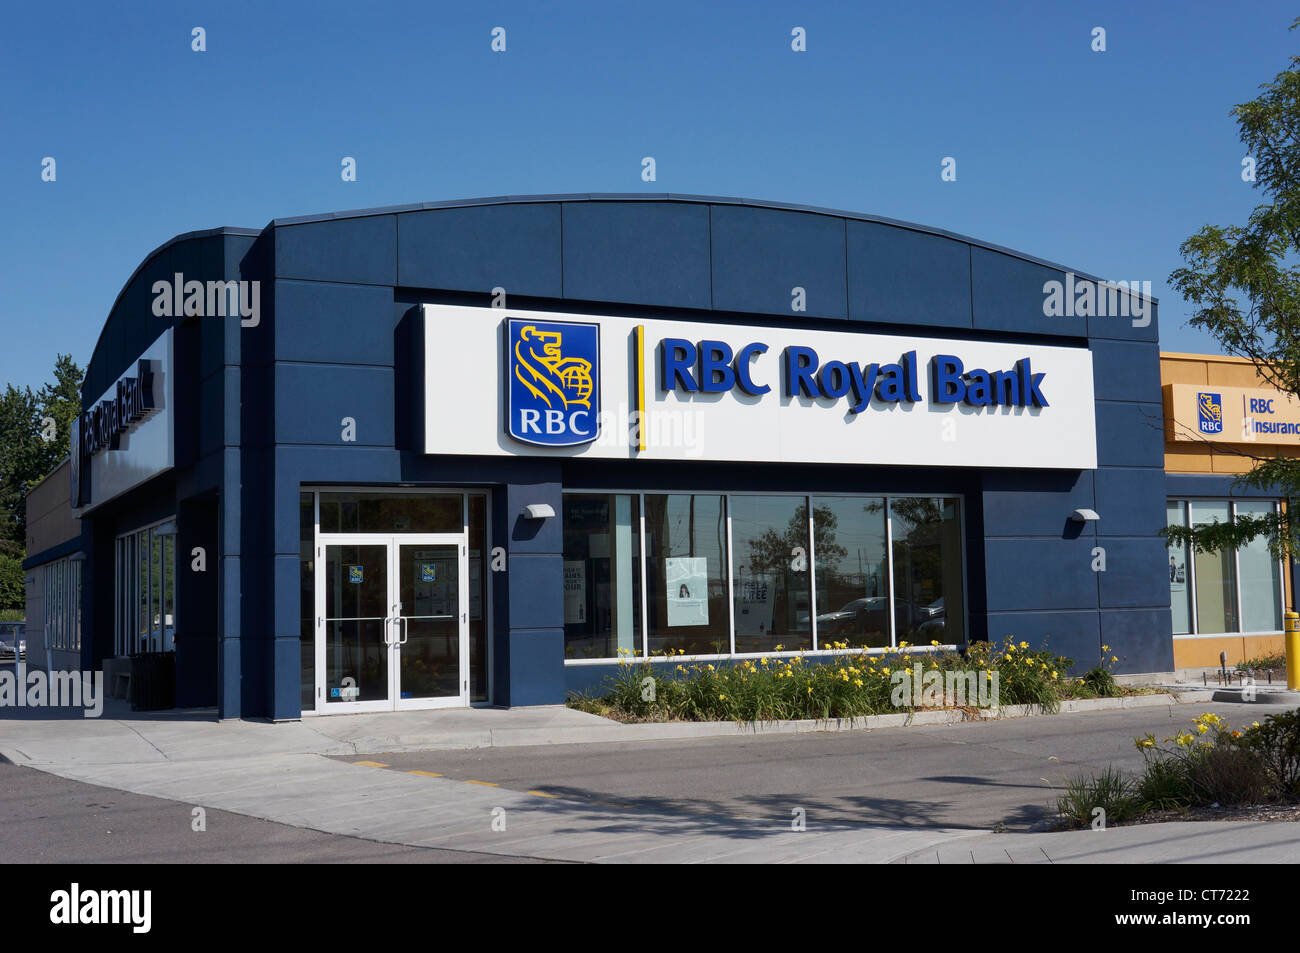 Local Branch Royal Bank of Canada, Insurance - Stock Image